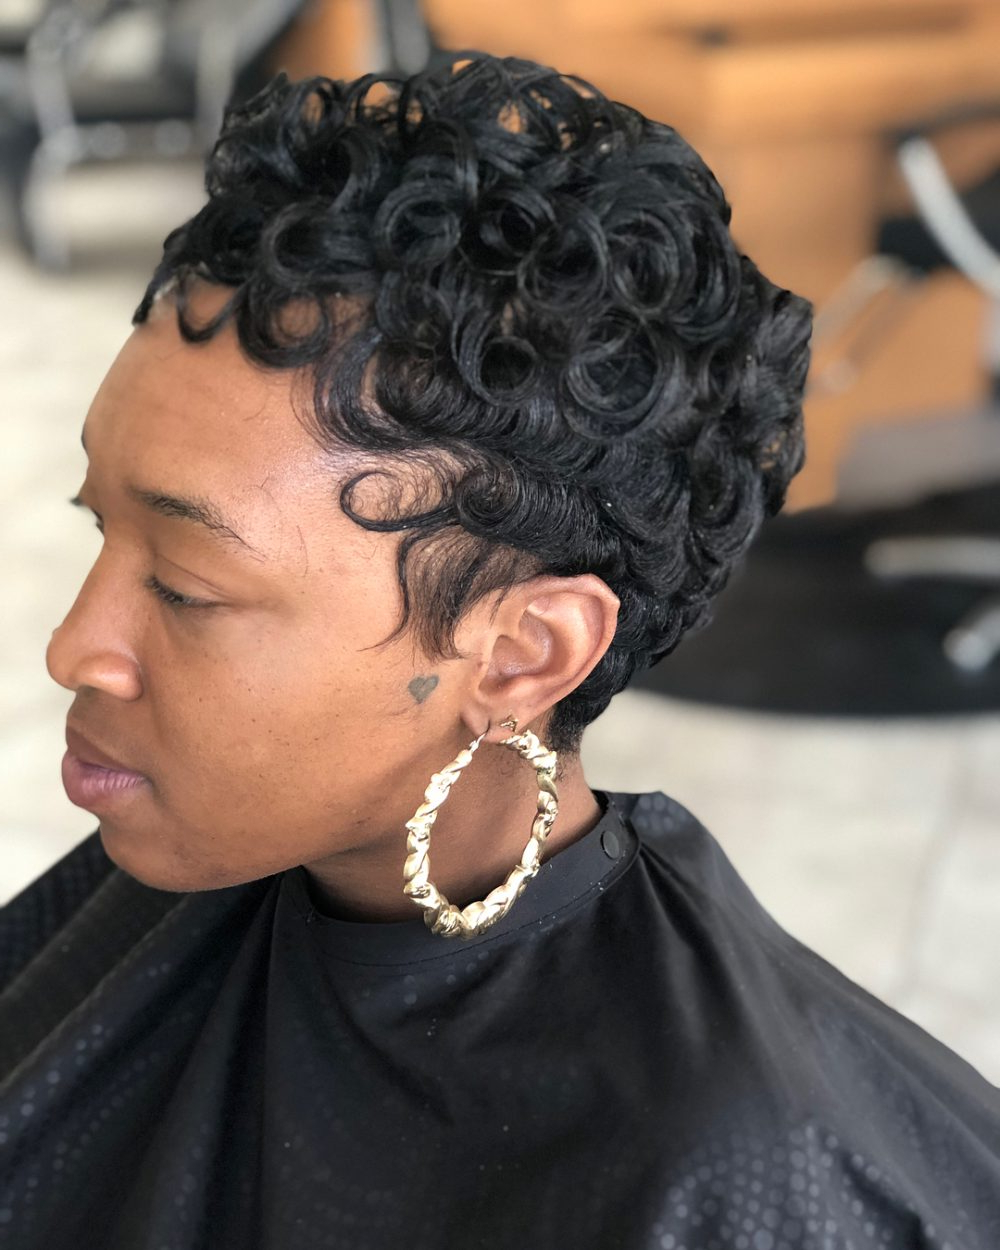 54 Easy Short Hairstyles For Black Women With Short Haircuts For Black Women With Round Faces (View 5 of 25)